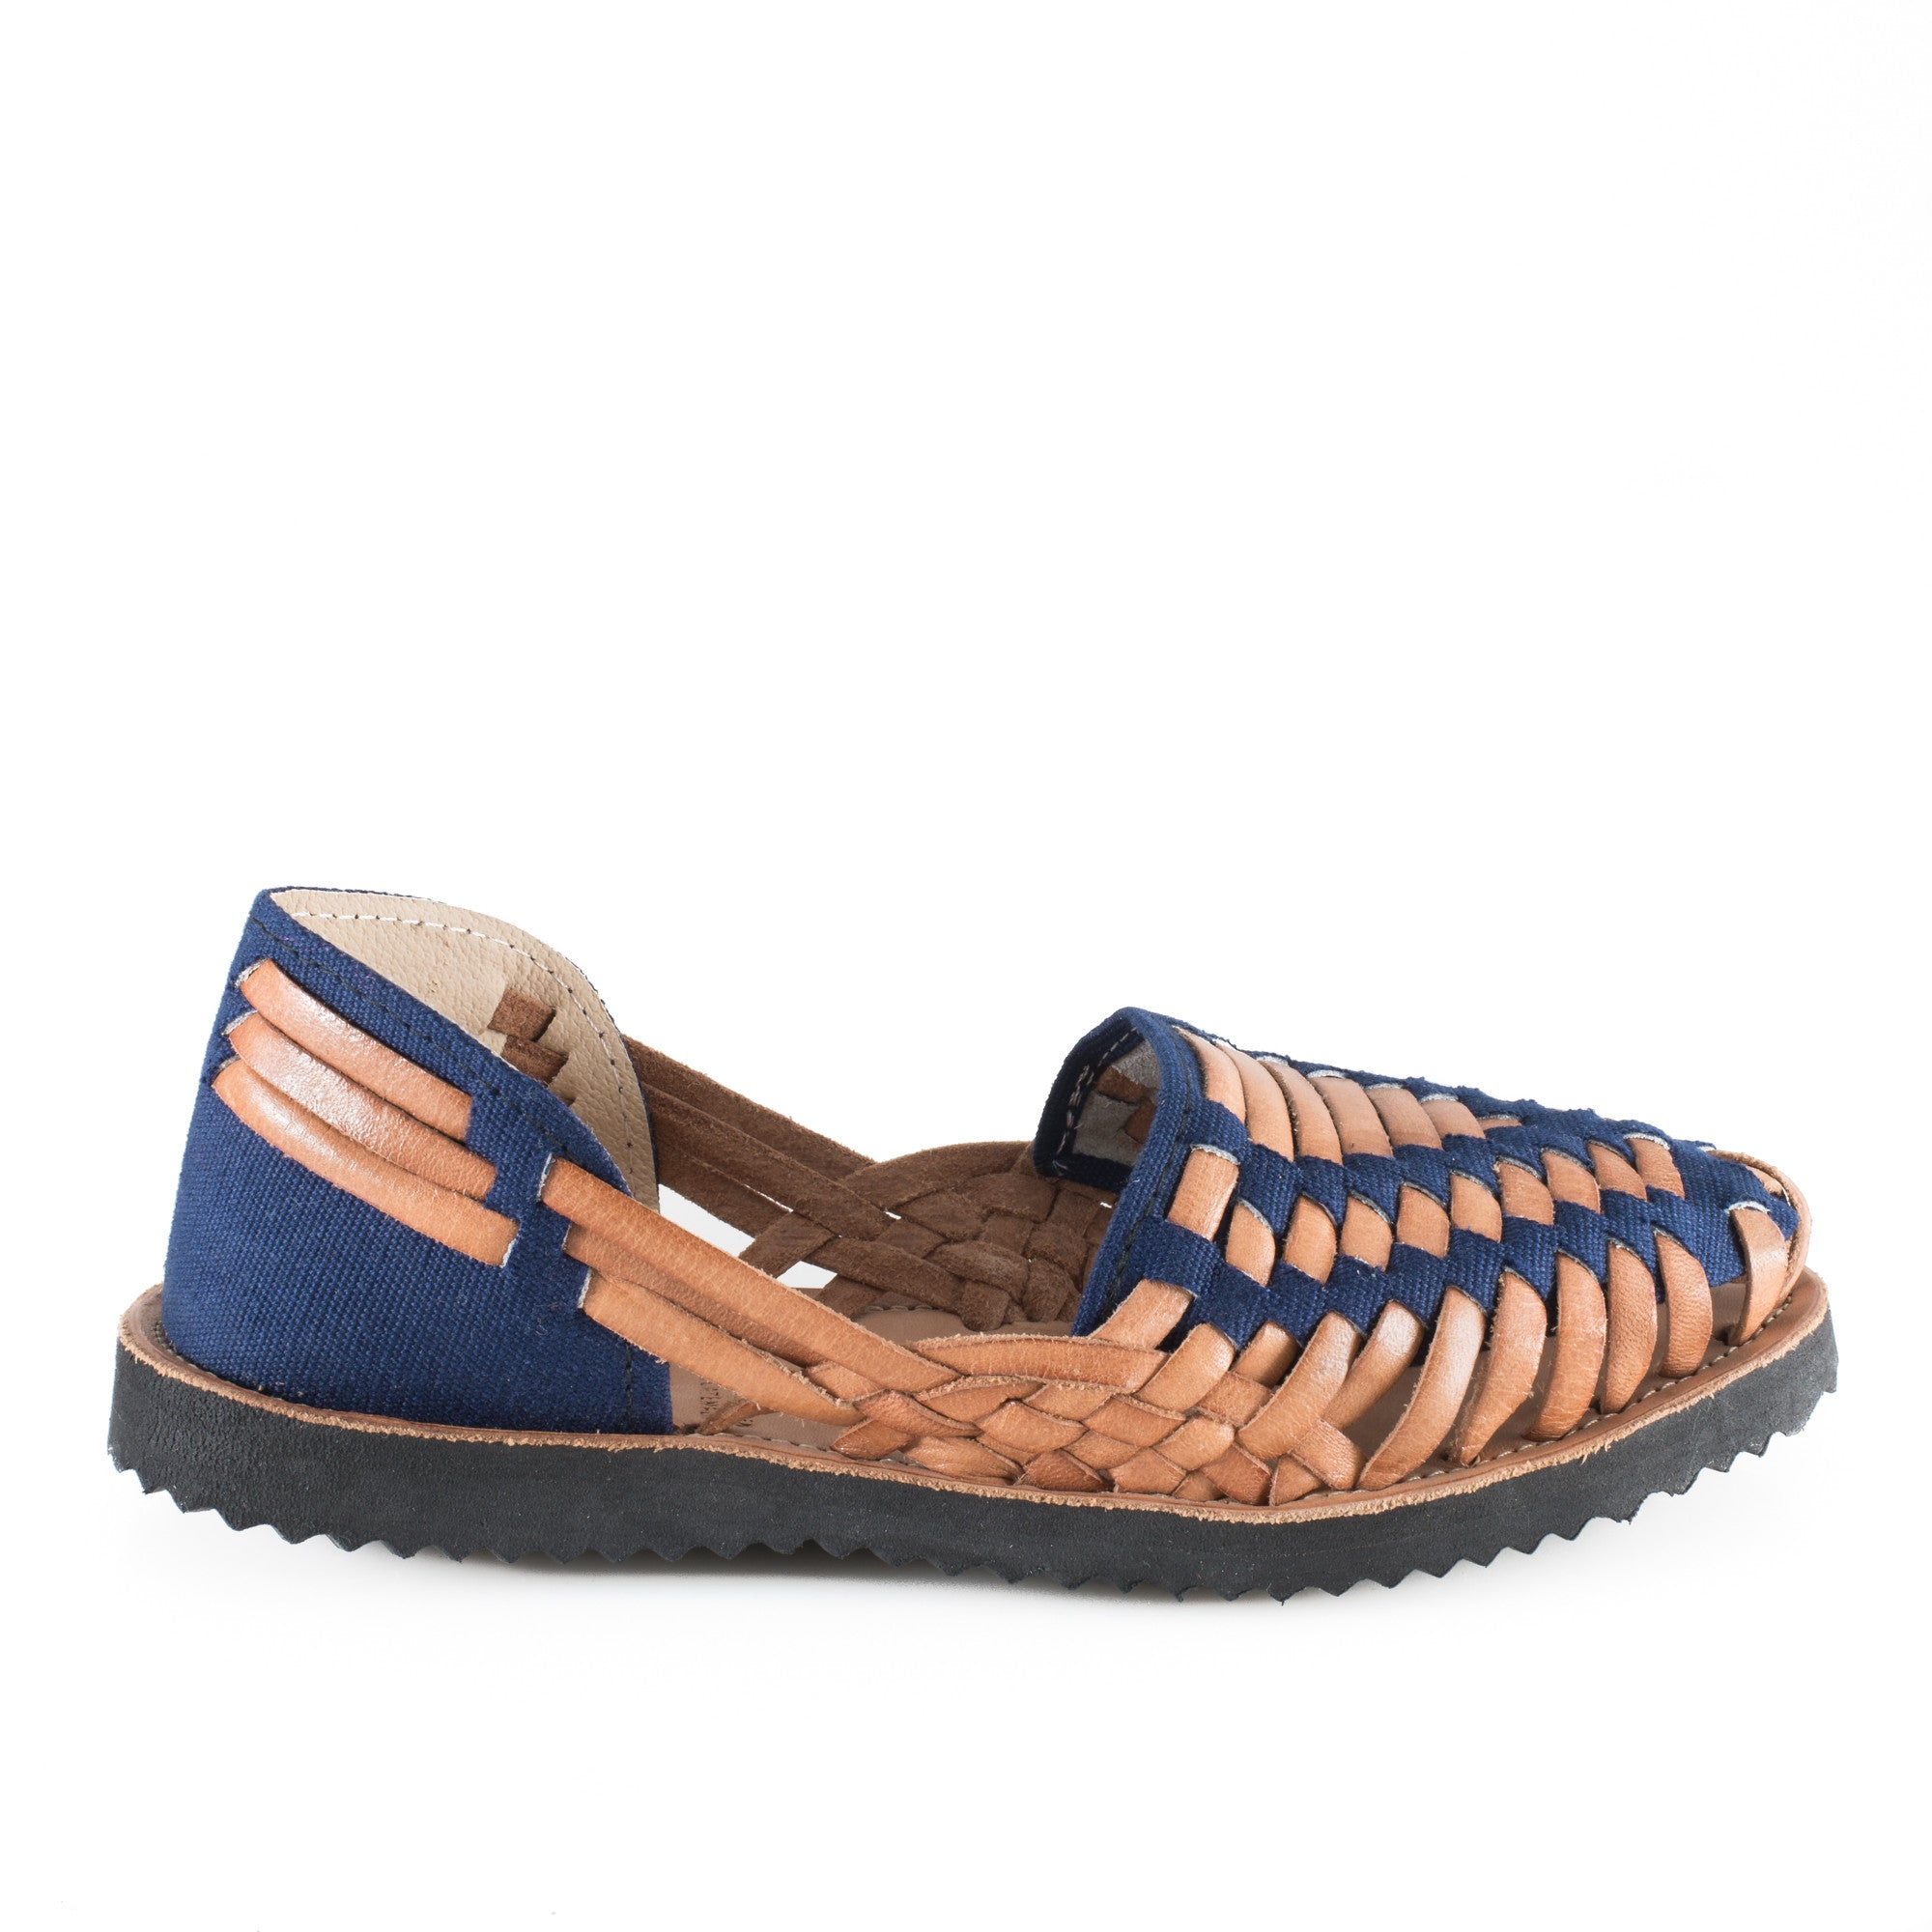 Women's Navy Woven Leather Huarache Sandals - Ix Style - Water For Children